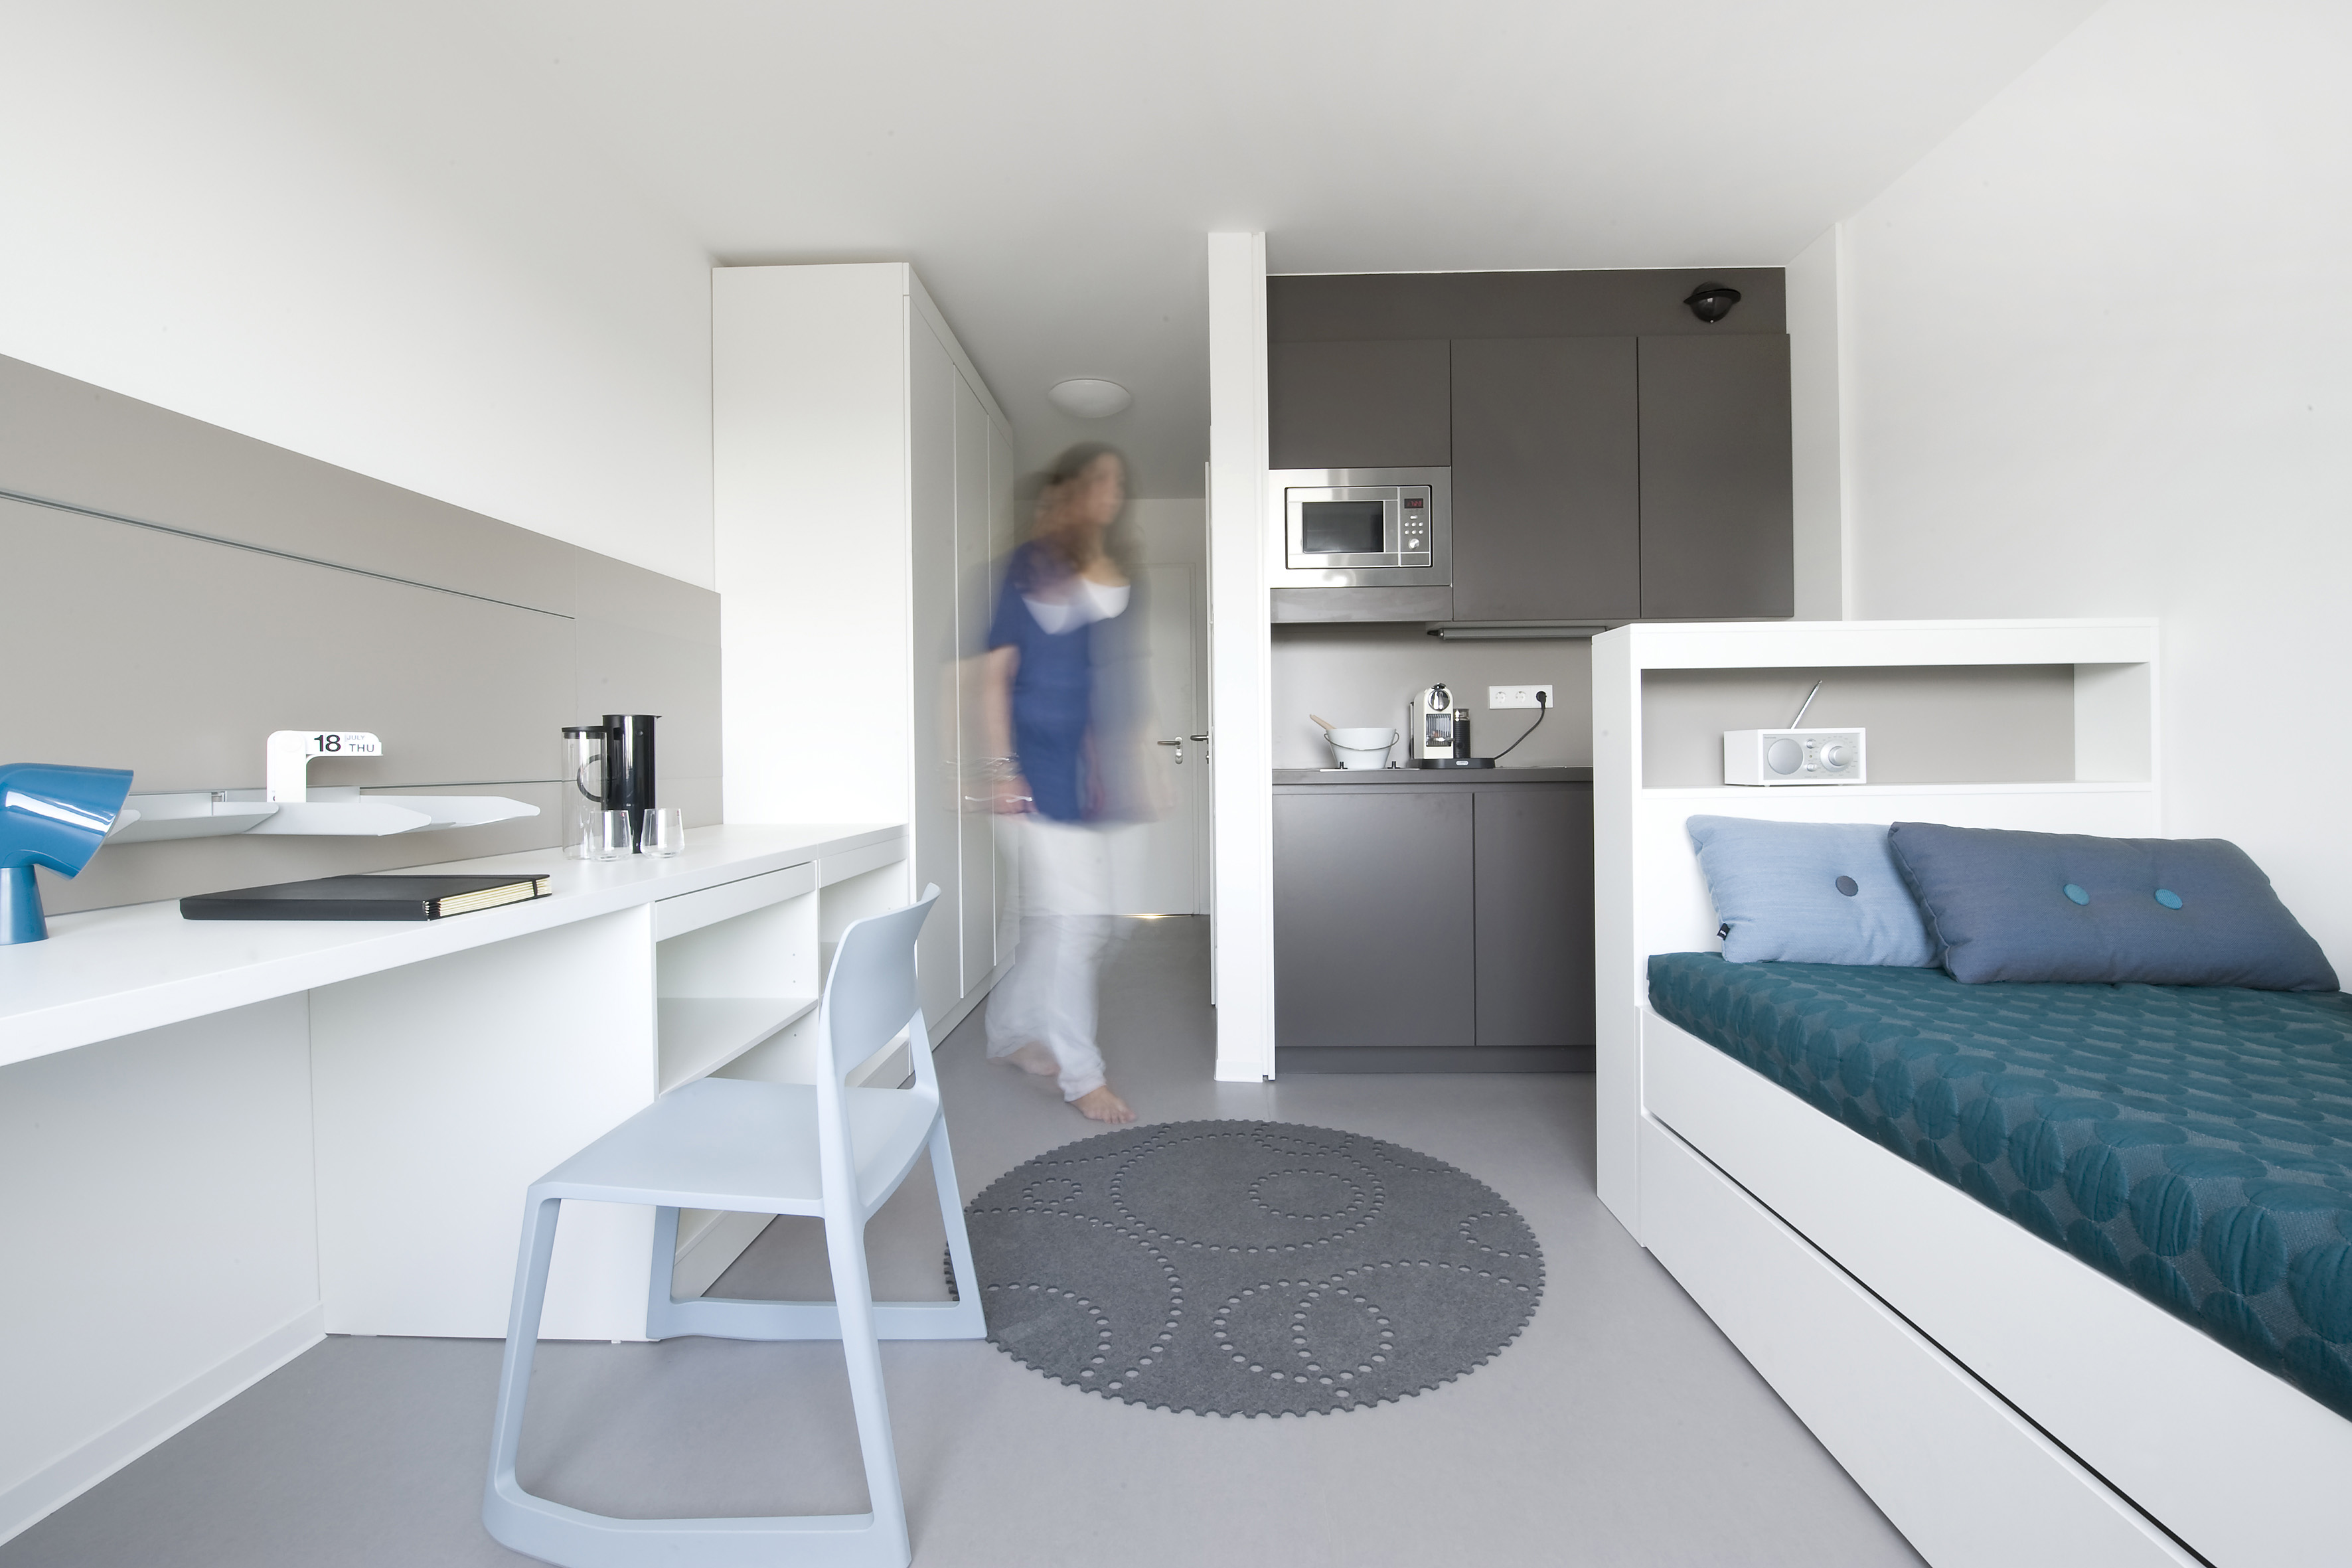 campus viva heidelberg muenchenarchitektur. Black Bedroom Furniture Sets. Home Design Ideas